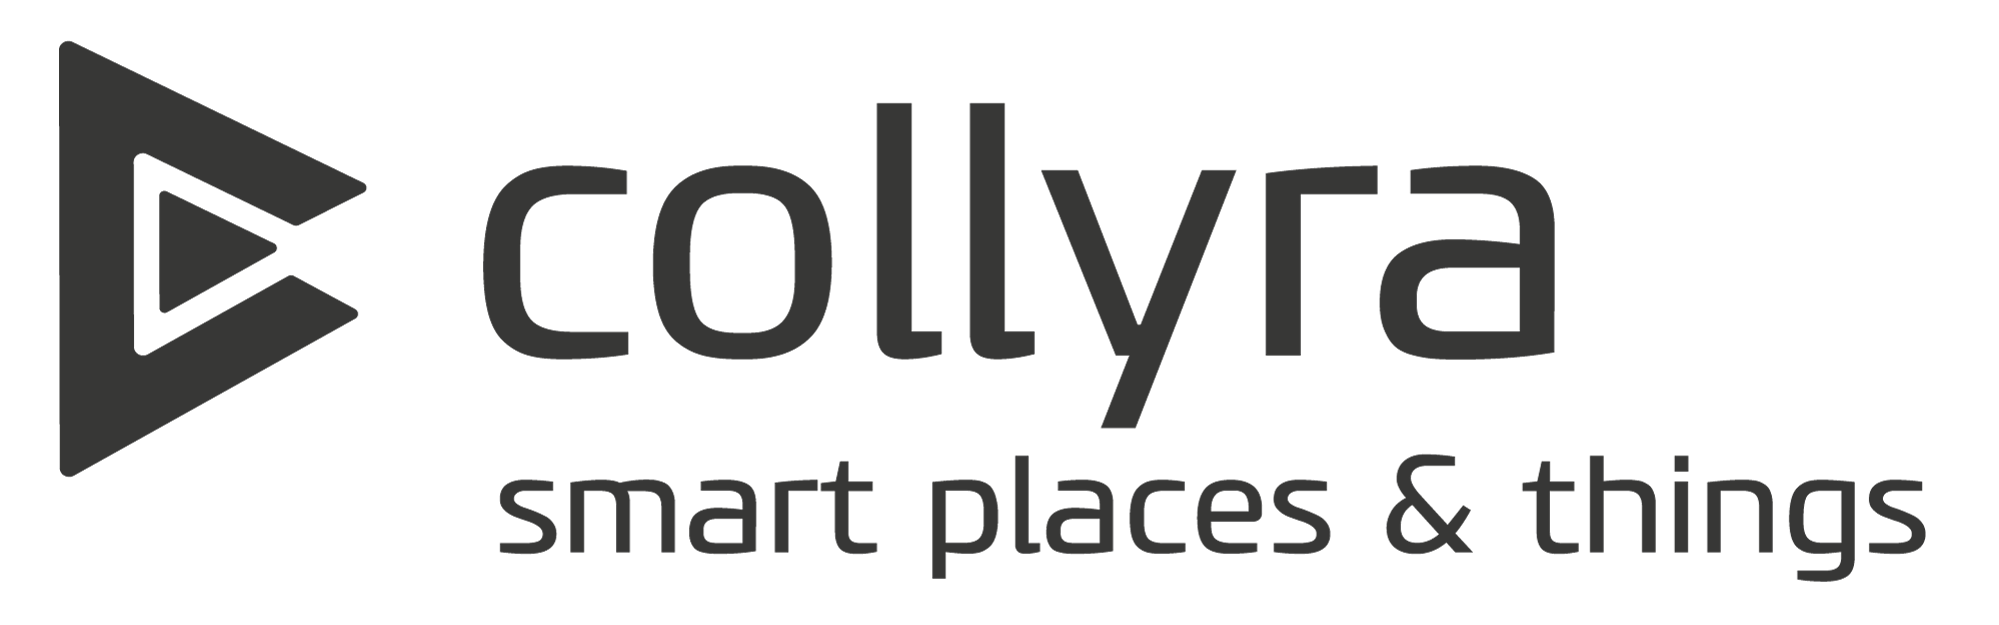 Collyra: smart places & things